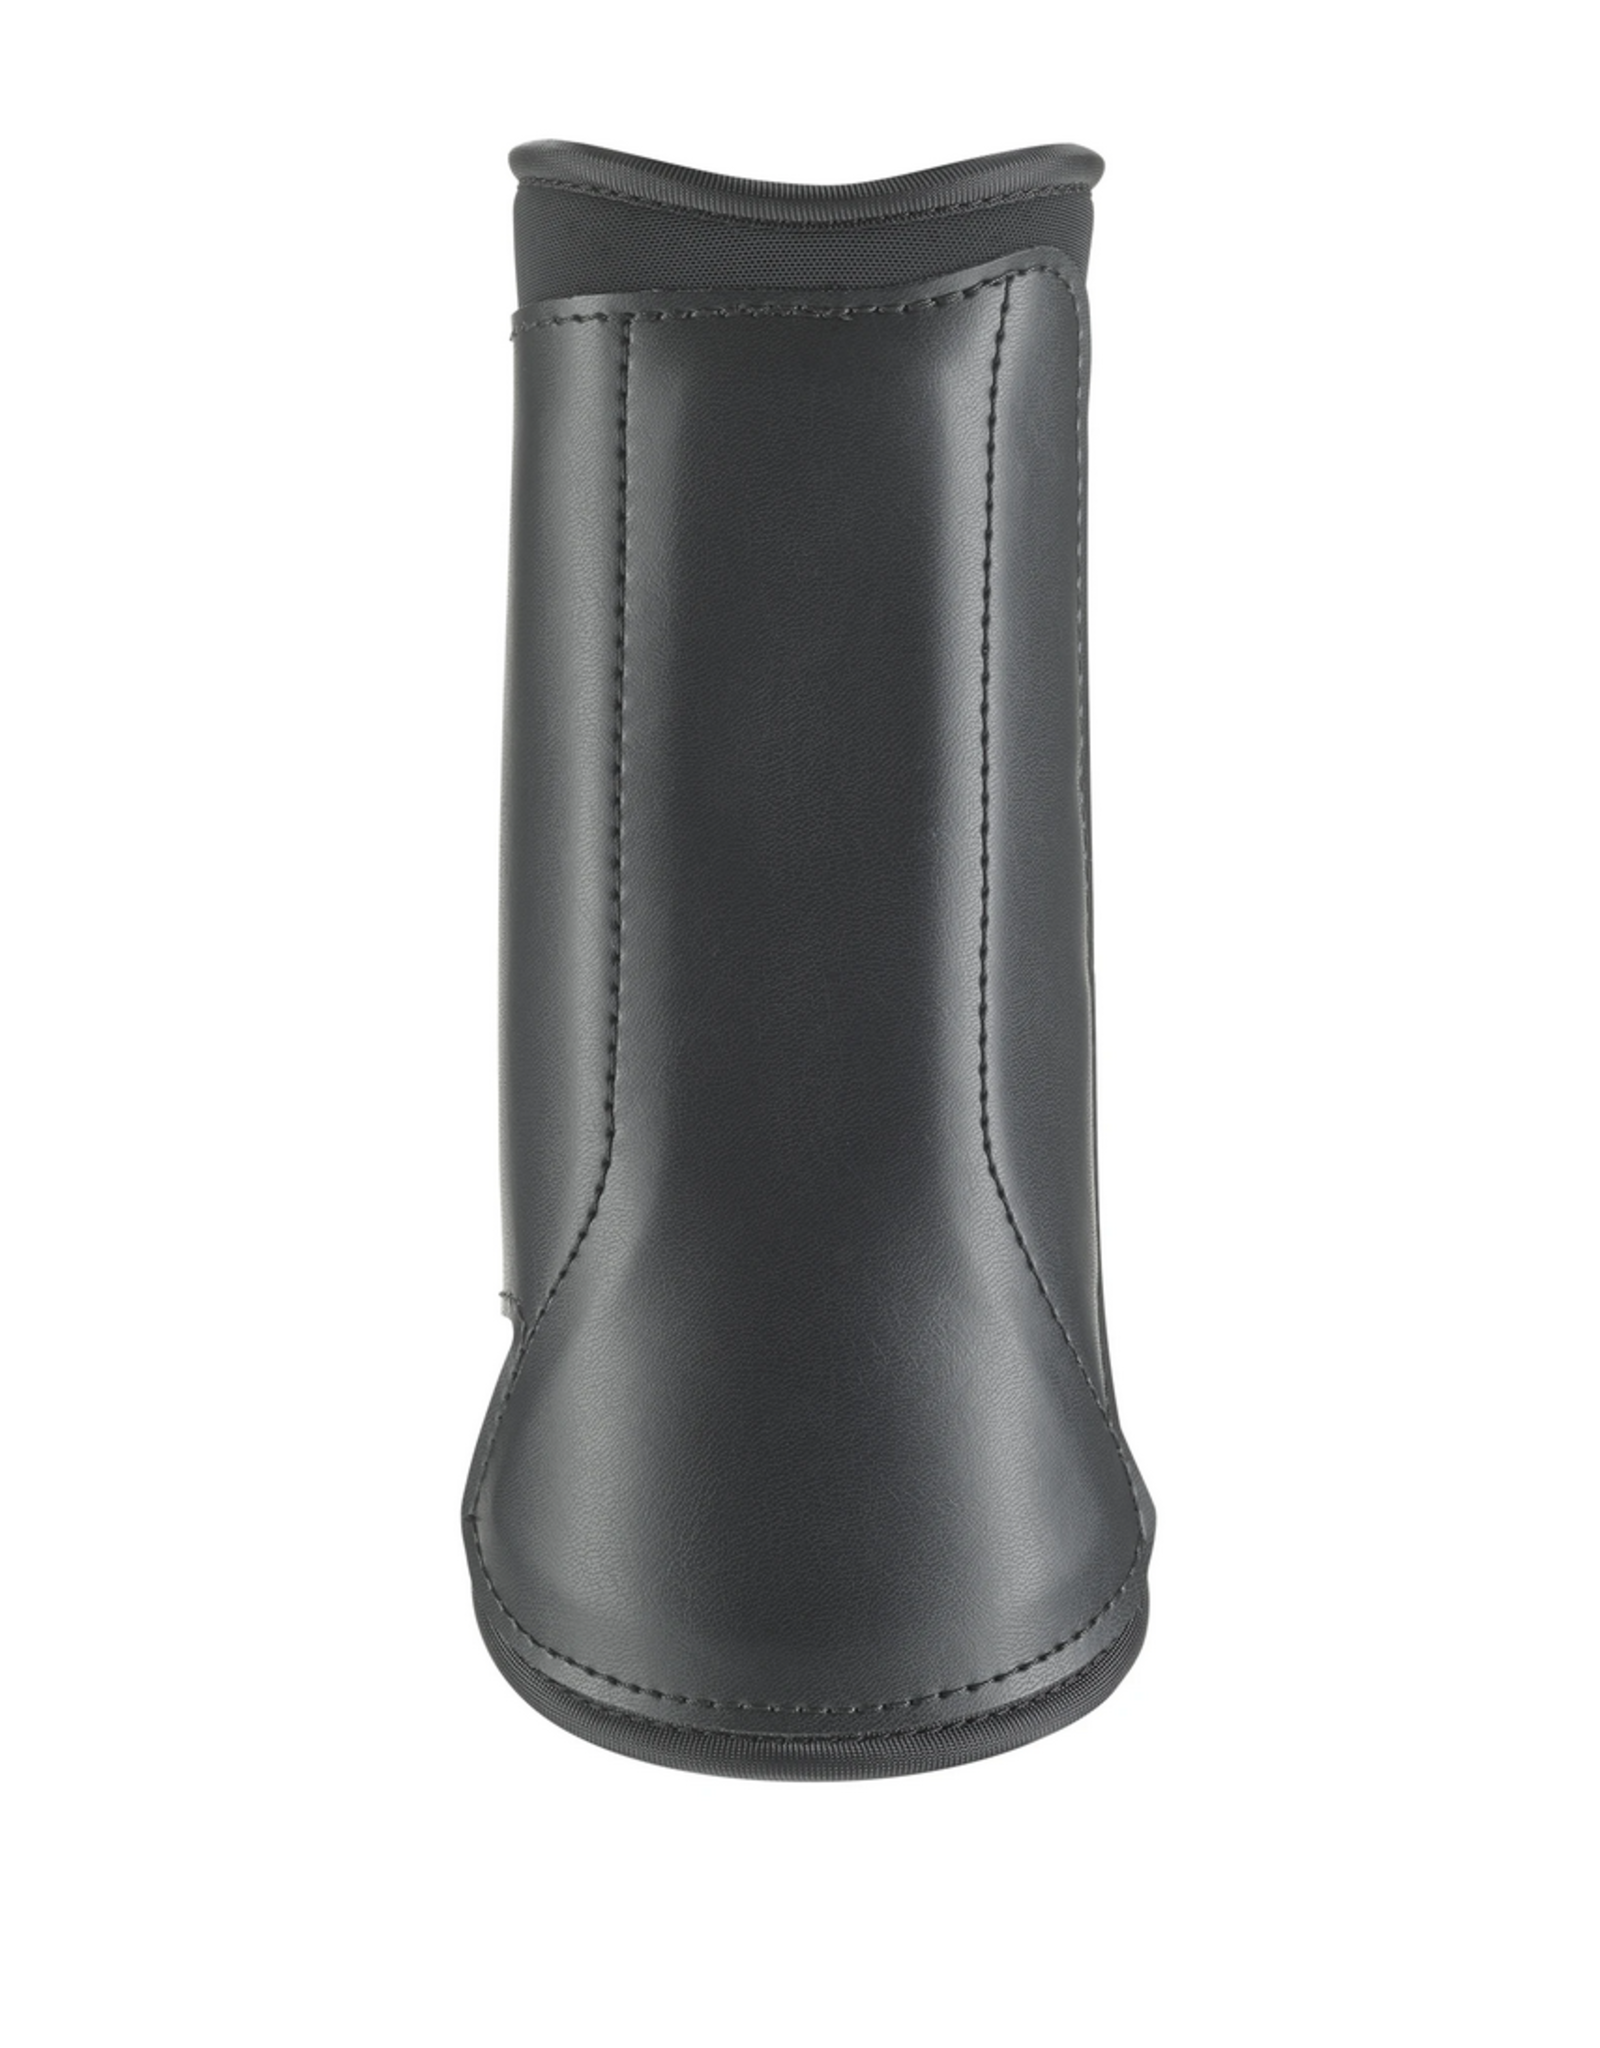 EquiFit Essential Every Day Front Boots